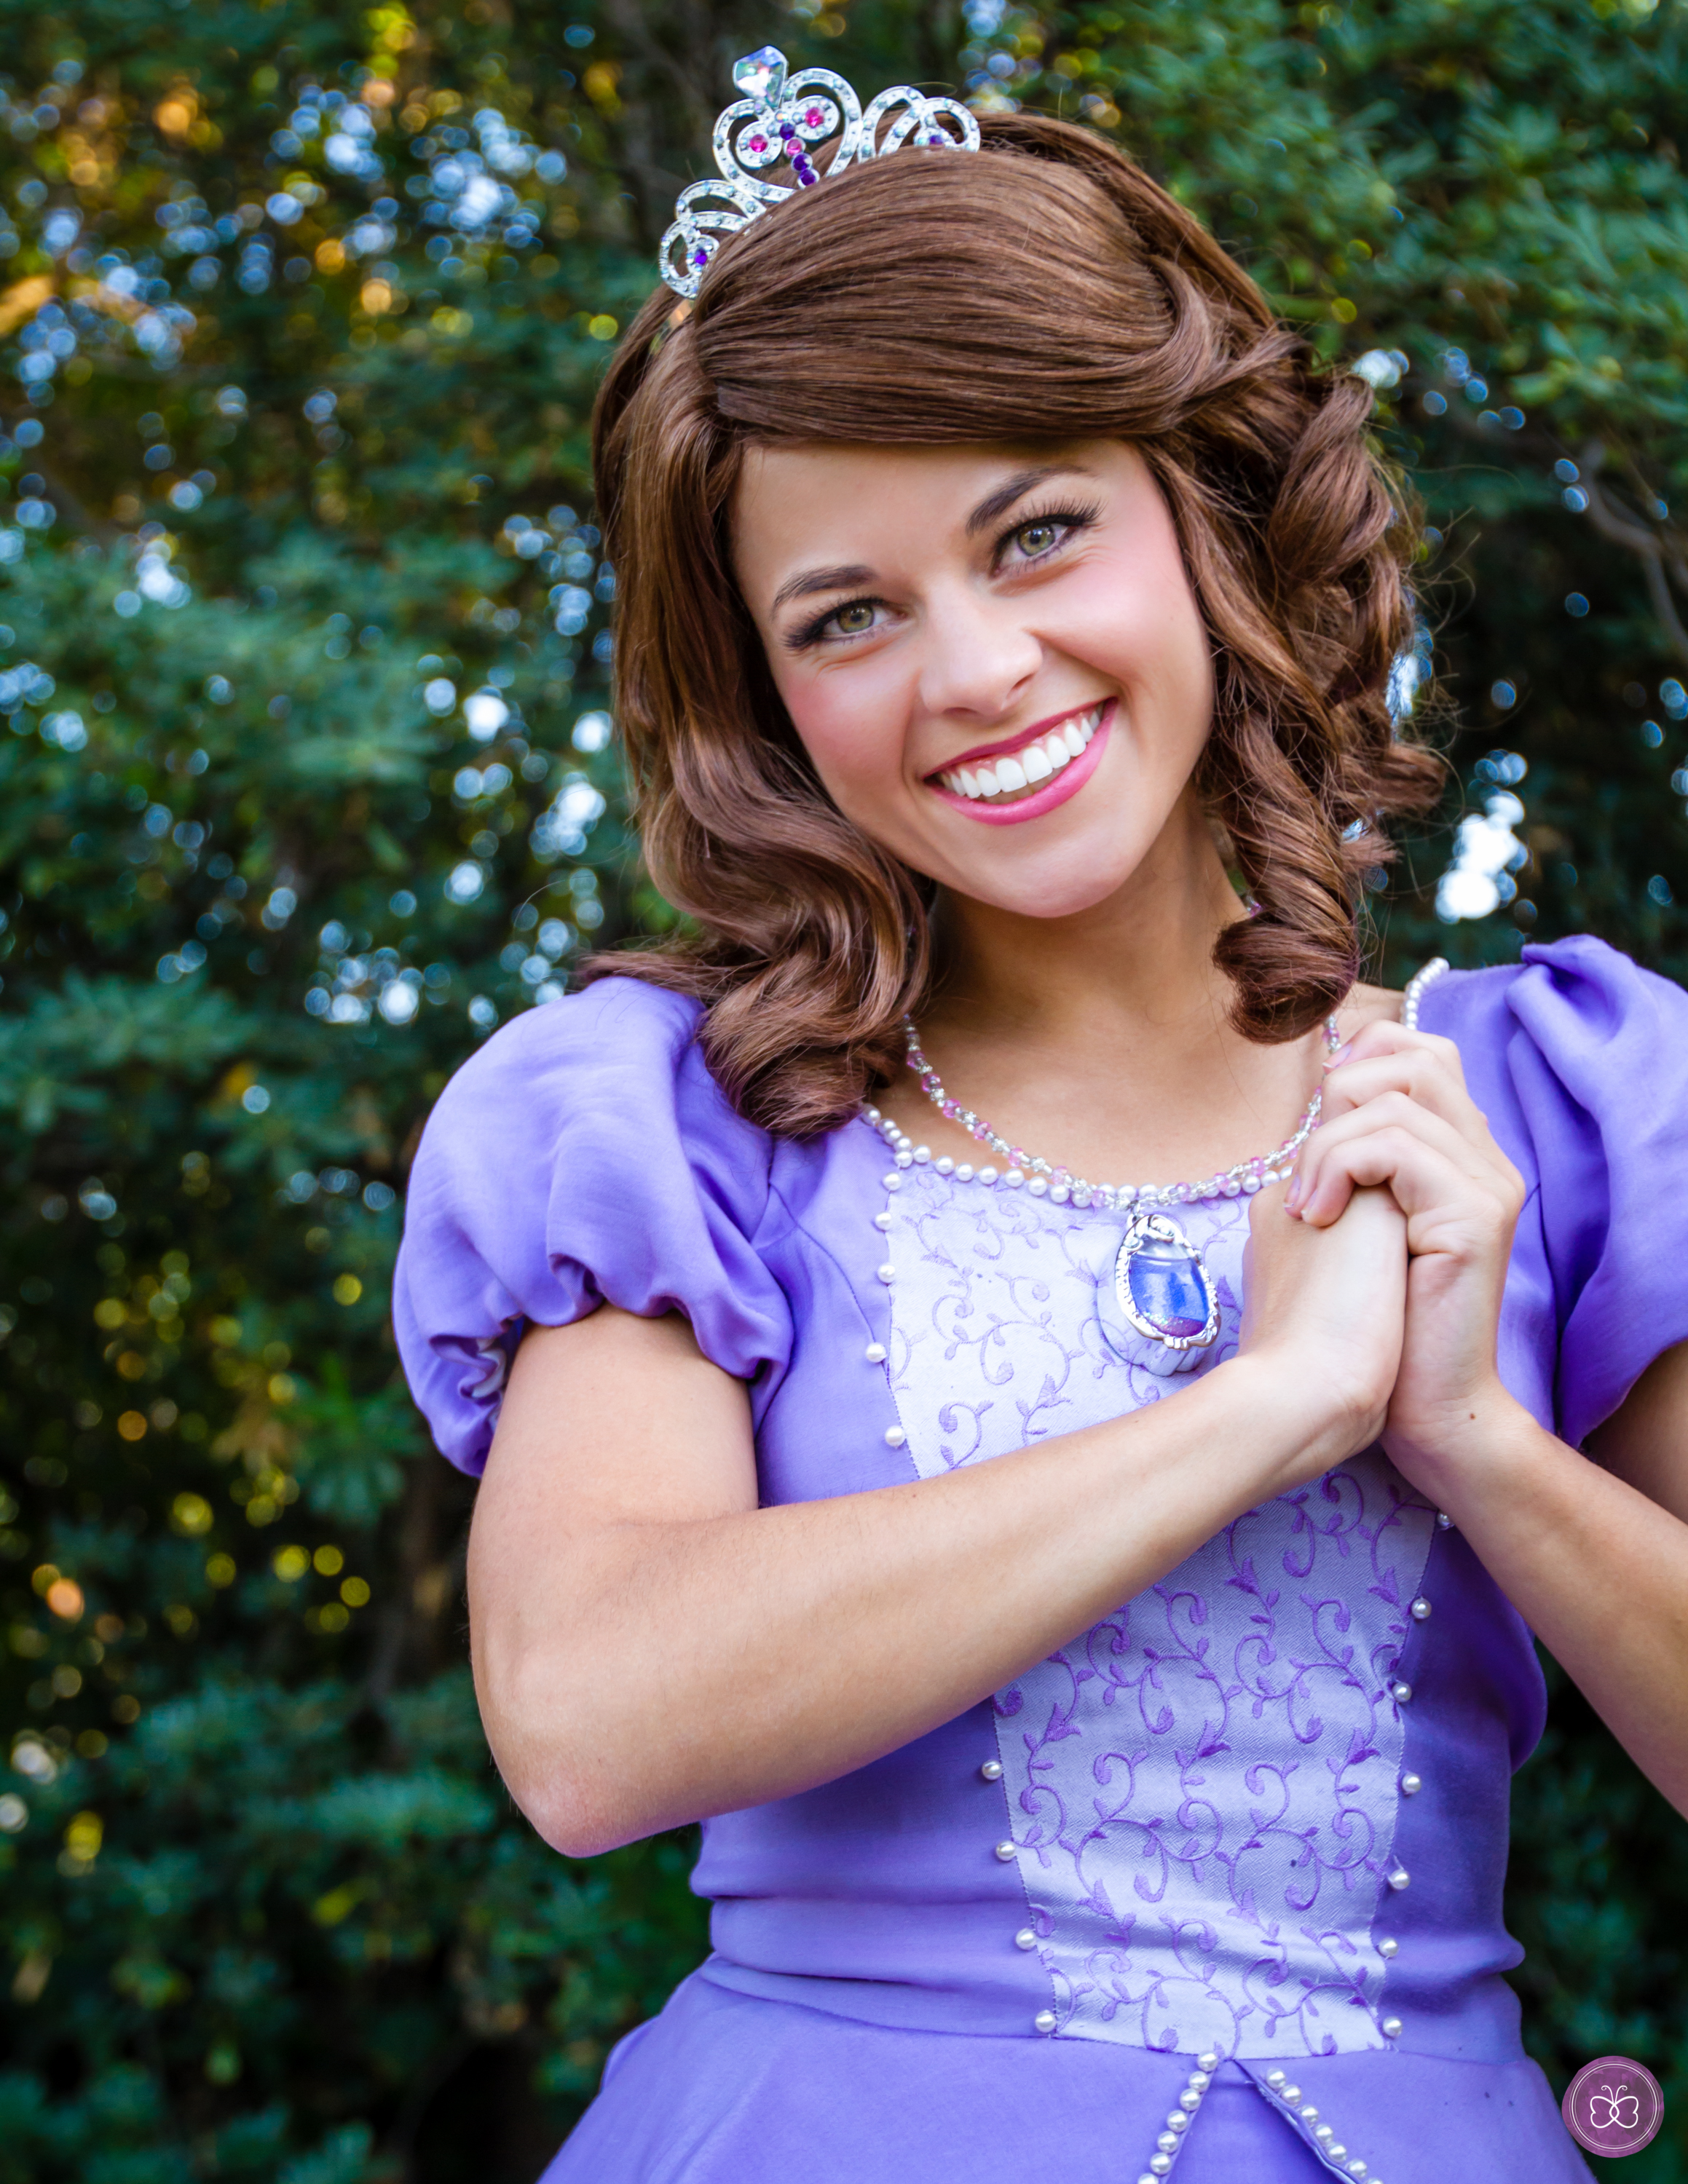 One of our cast members even had the honor of playing the very first lookalike of Sofia the First for Disney Live! on tour.